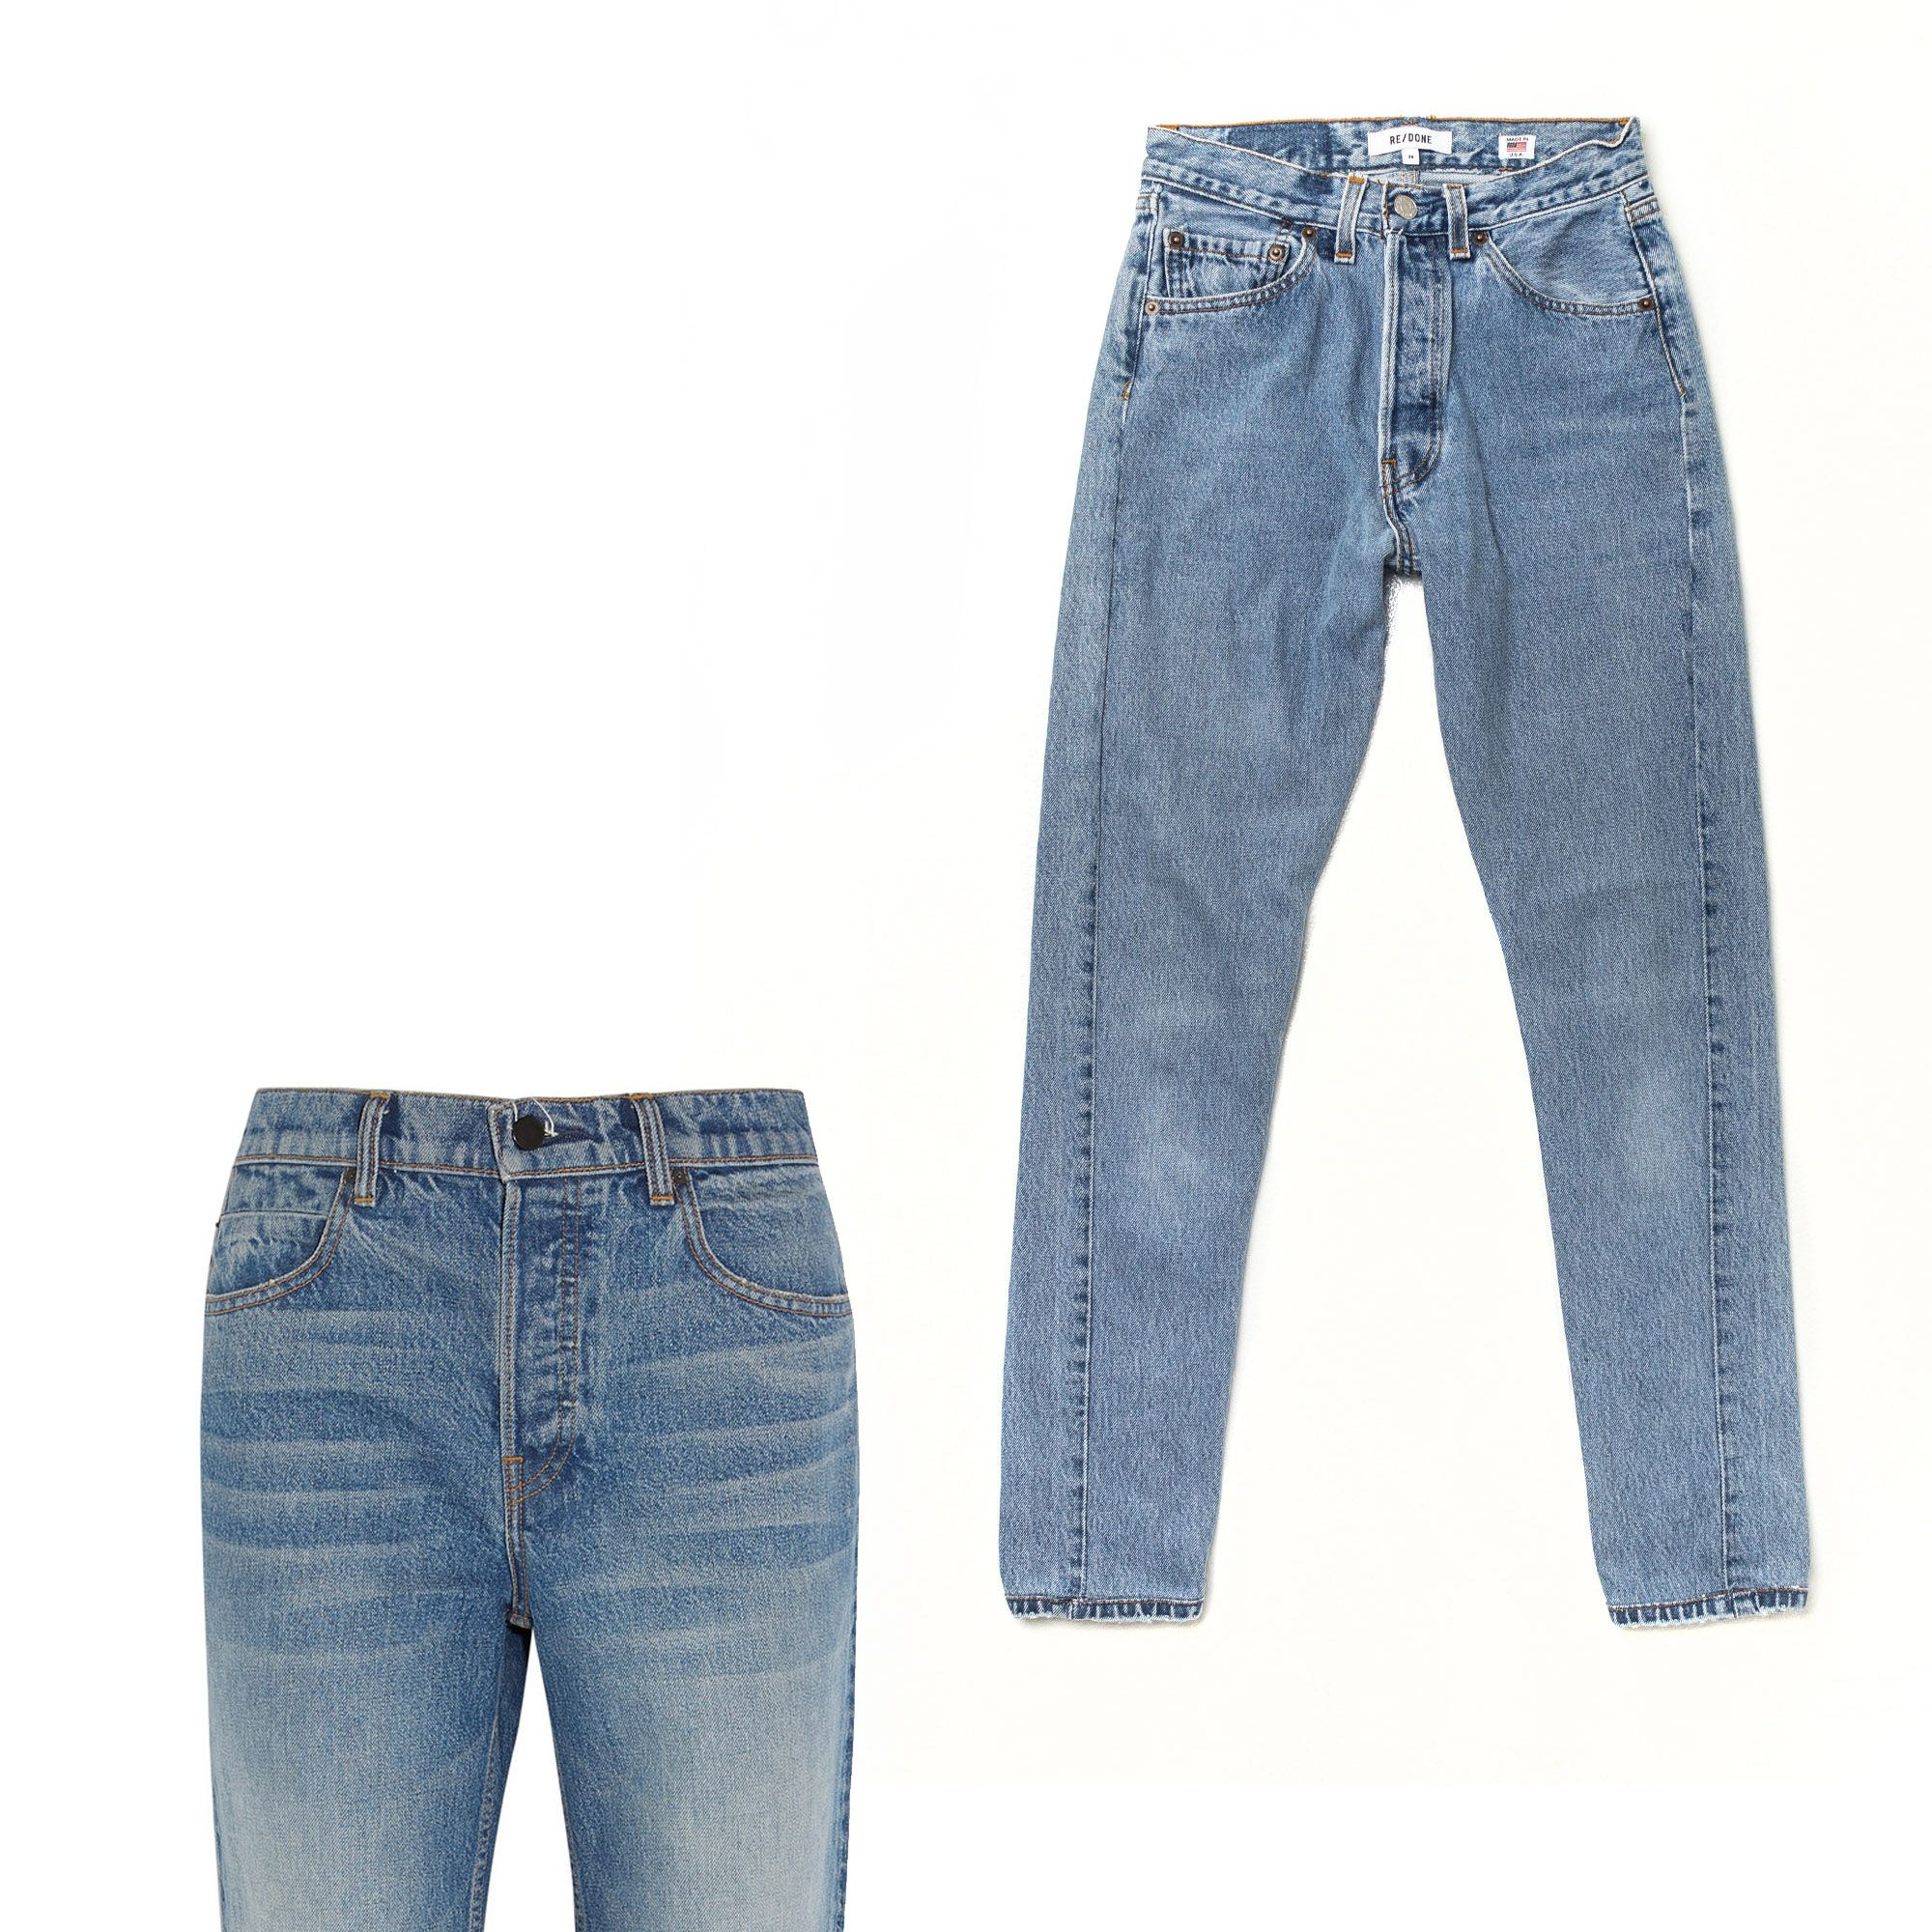 Classic '90s silhouettes that would do Brenda Walsh proud get reimagined and reworked for a very chic take on mom jeans.